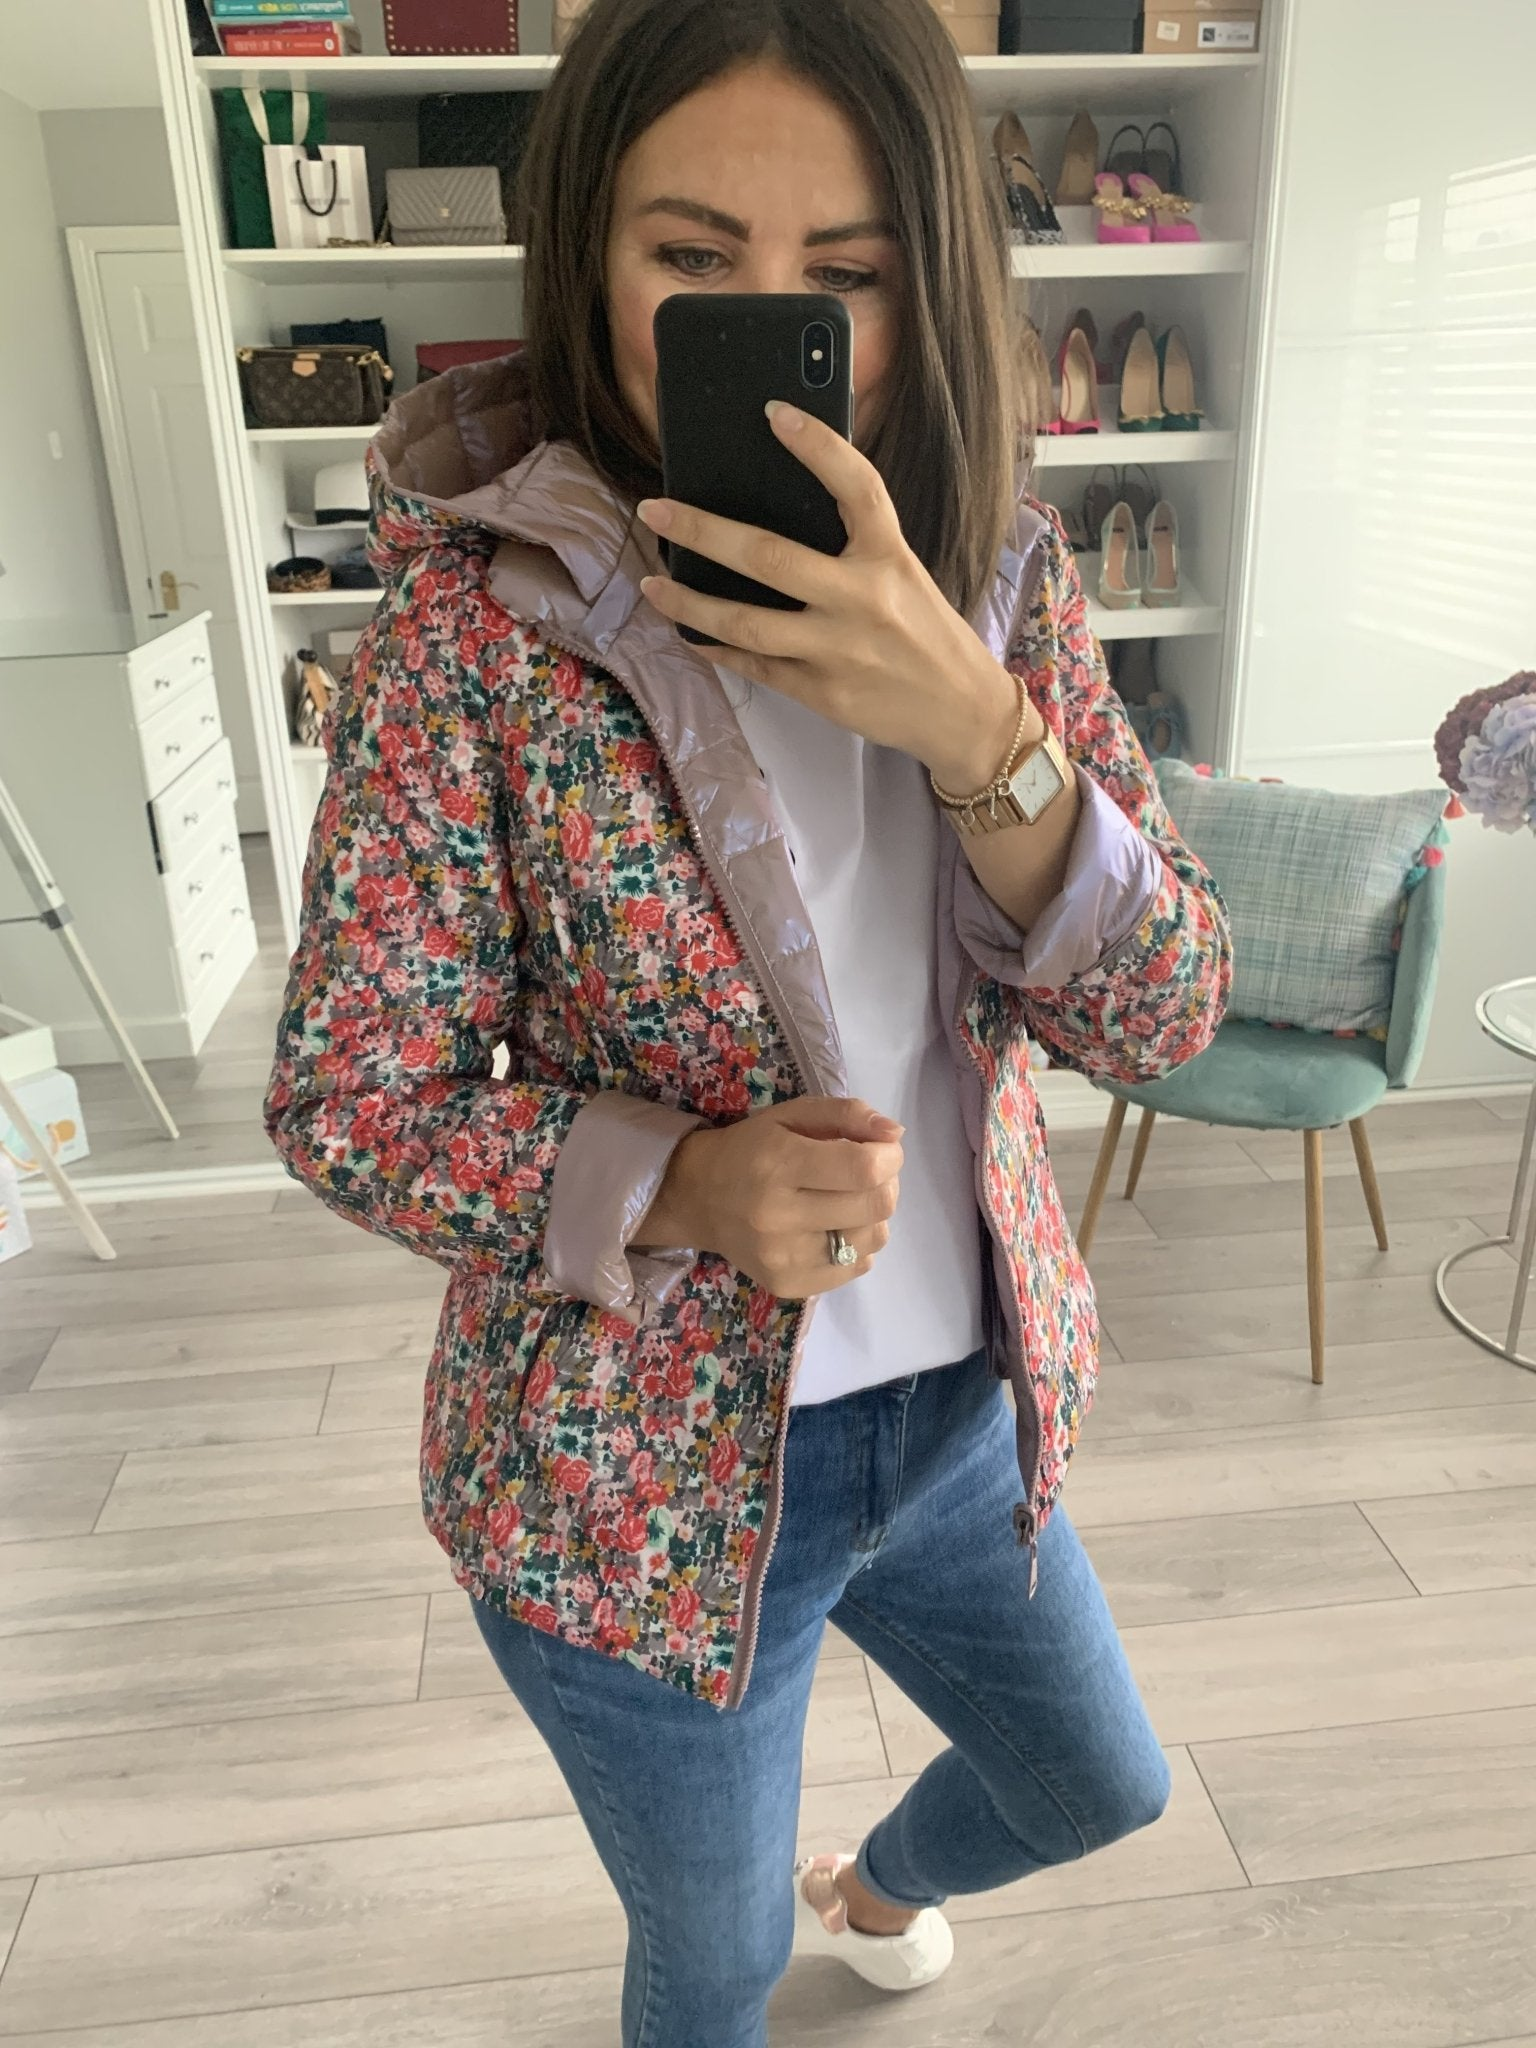 Emilia Blush & Floral Reversible Coat - The Walk in Wardrobe